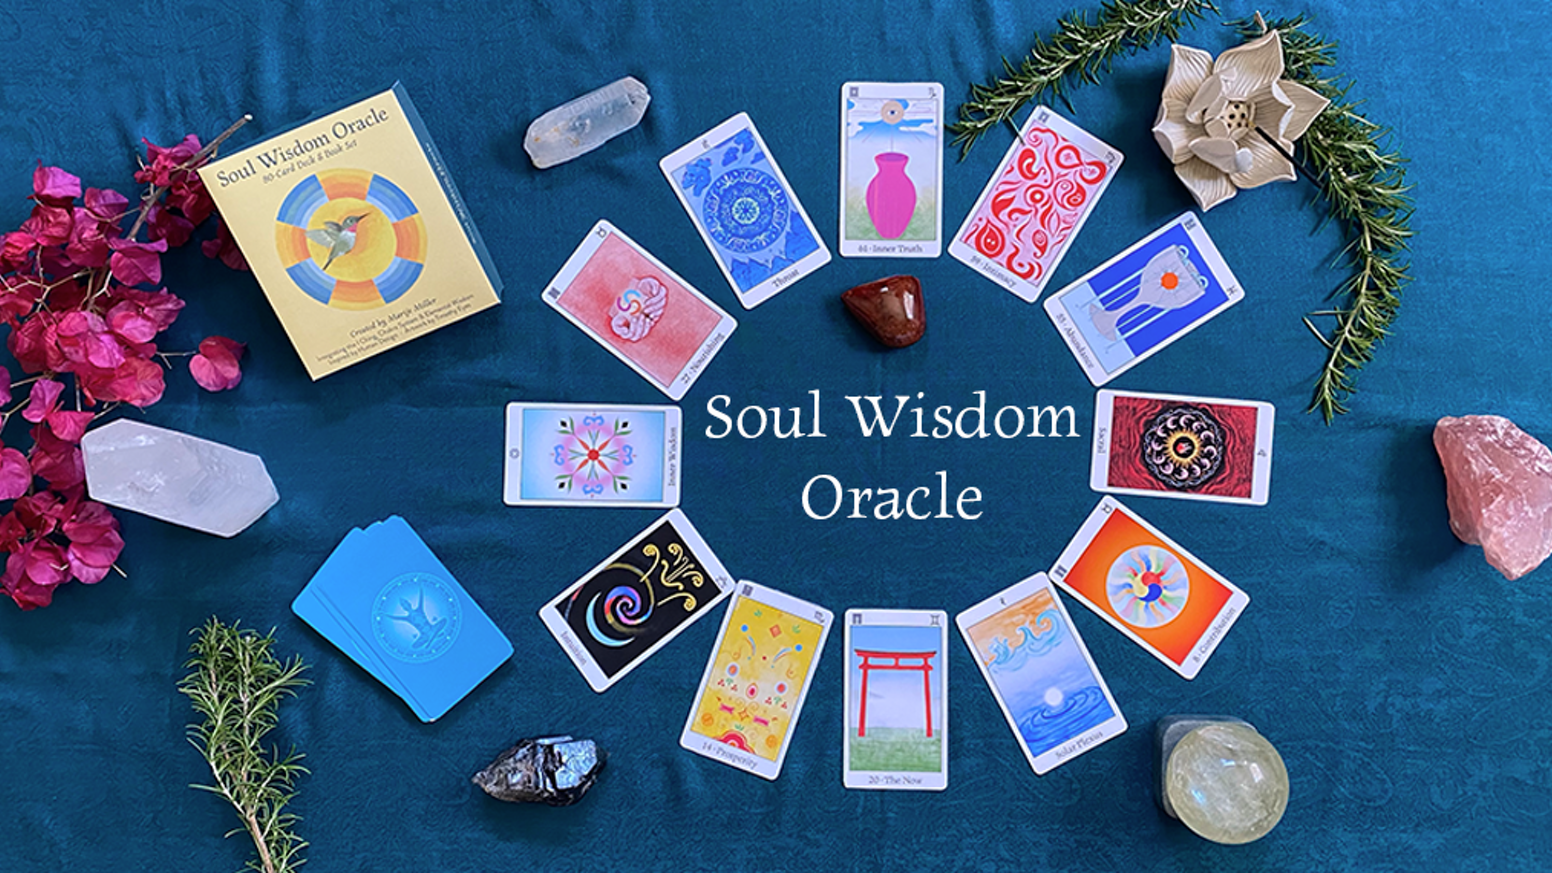 An innovative 80-card Oracle integrating I Ching, Chakra System and Elemental Wisdom, inspired by Human Design.